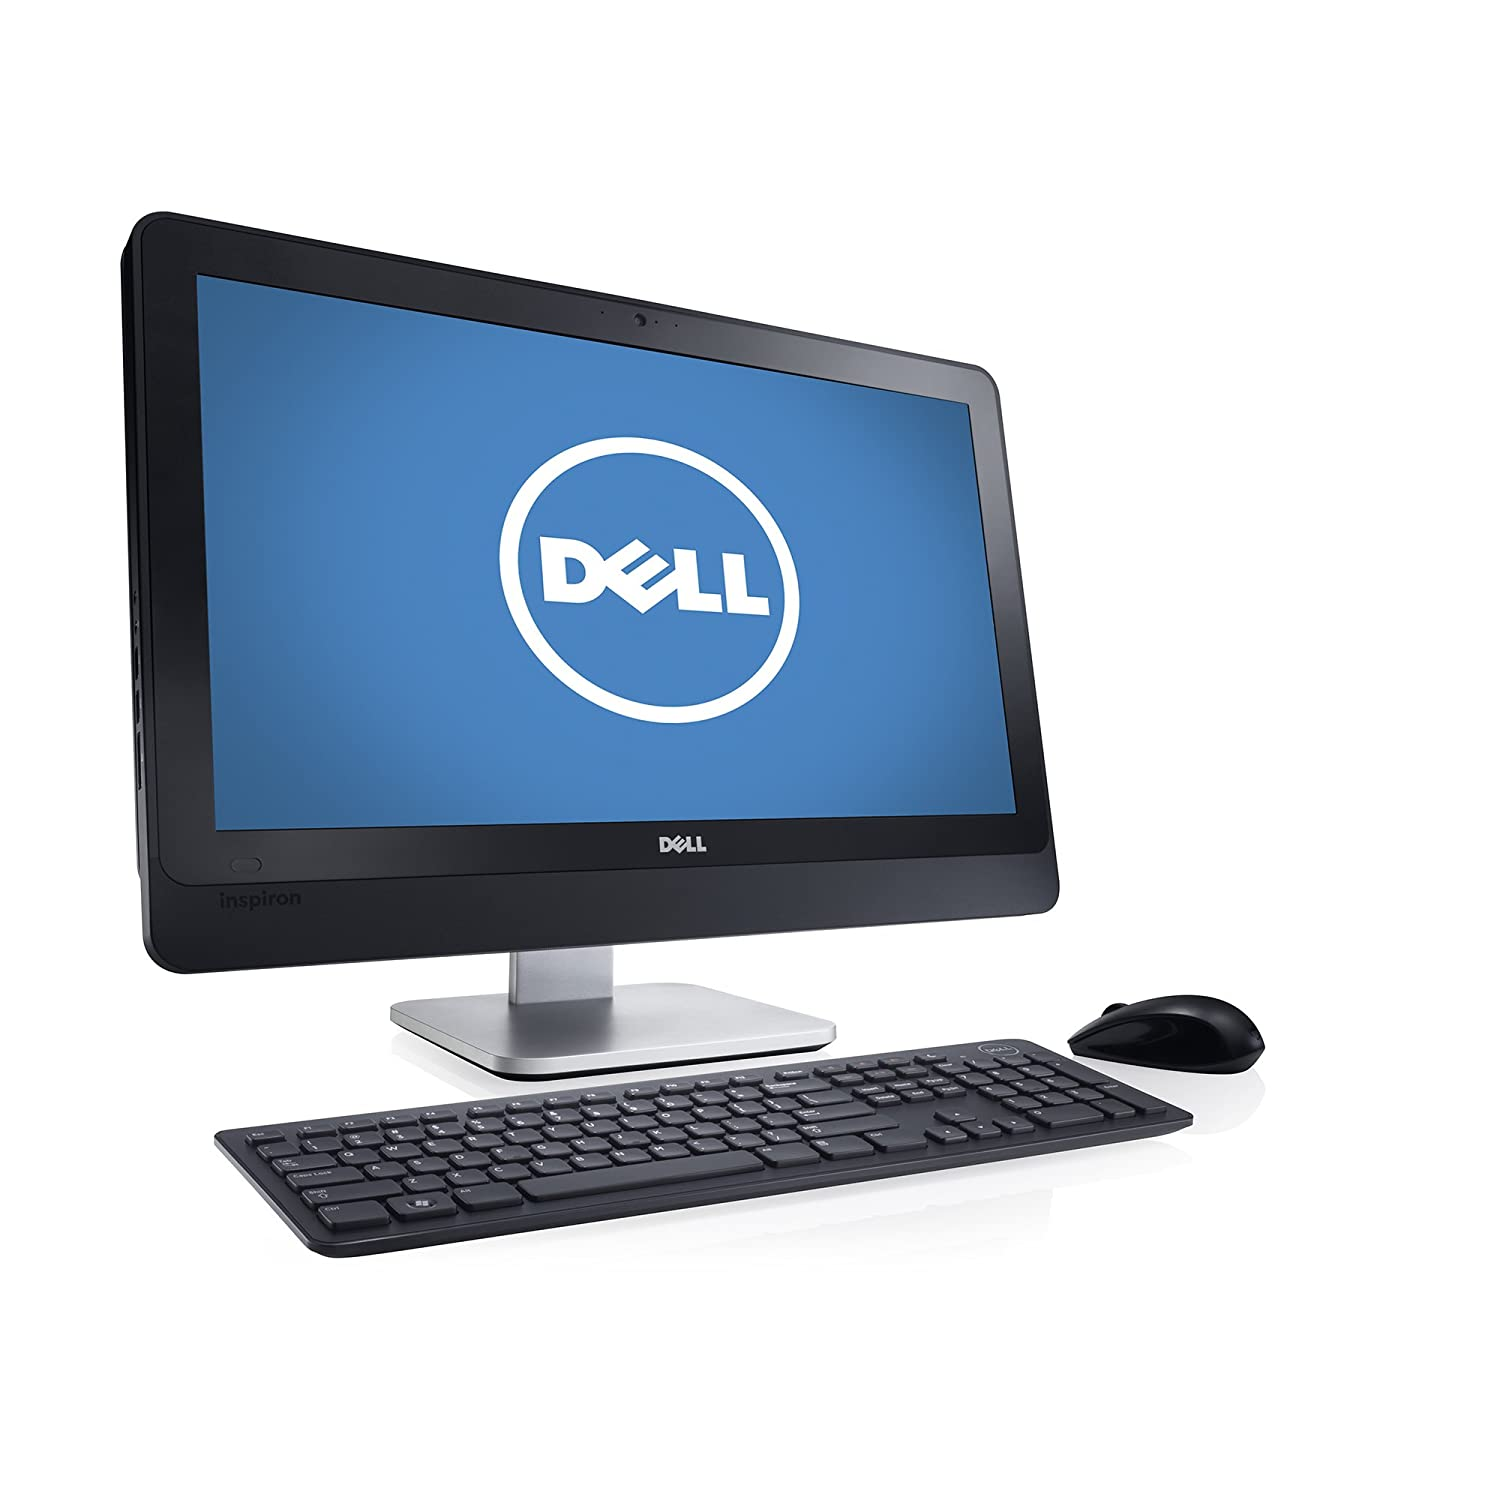 Dell Inspiron 2330 io2330T-3636BK 23-Inch All-in-One Touchscreen Desktop